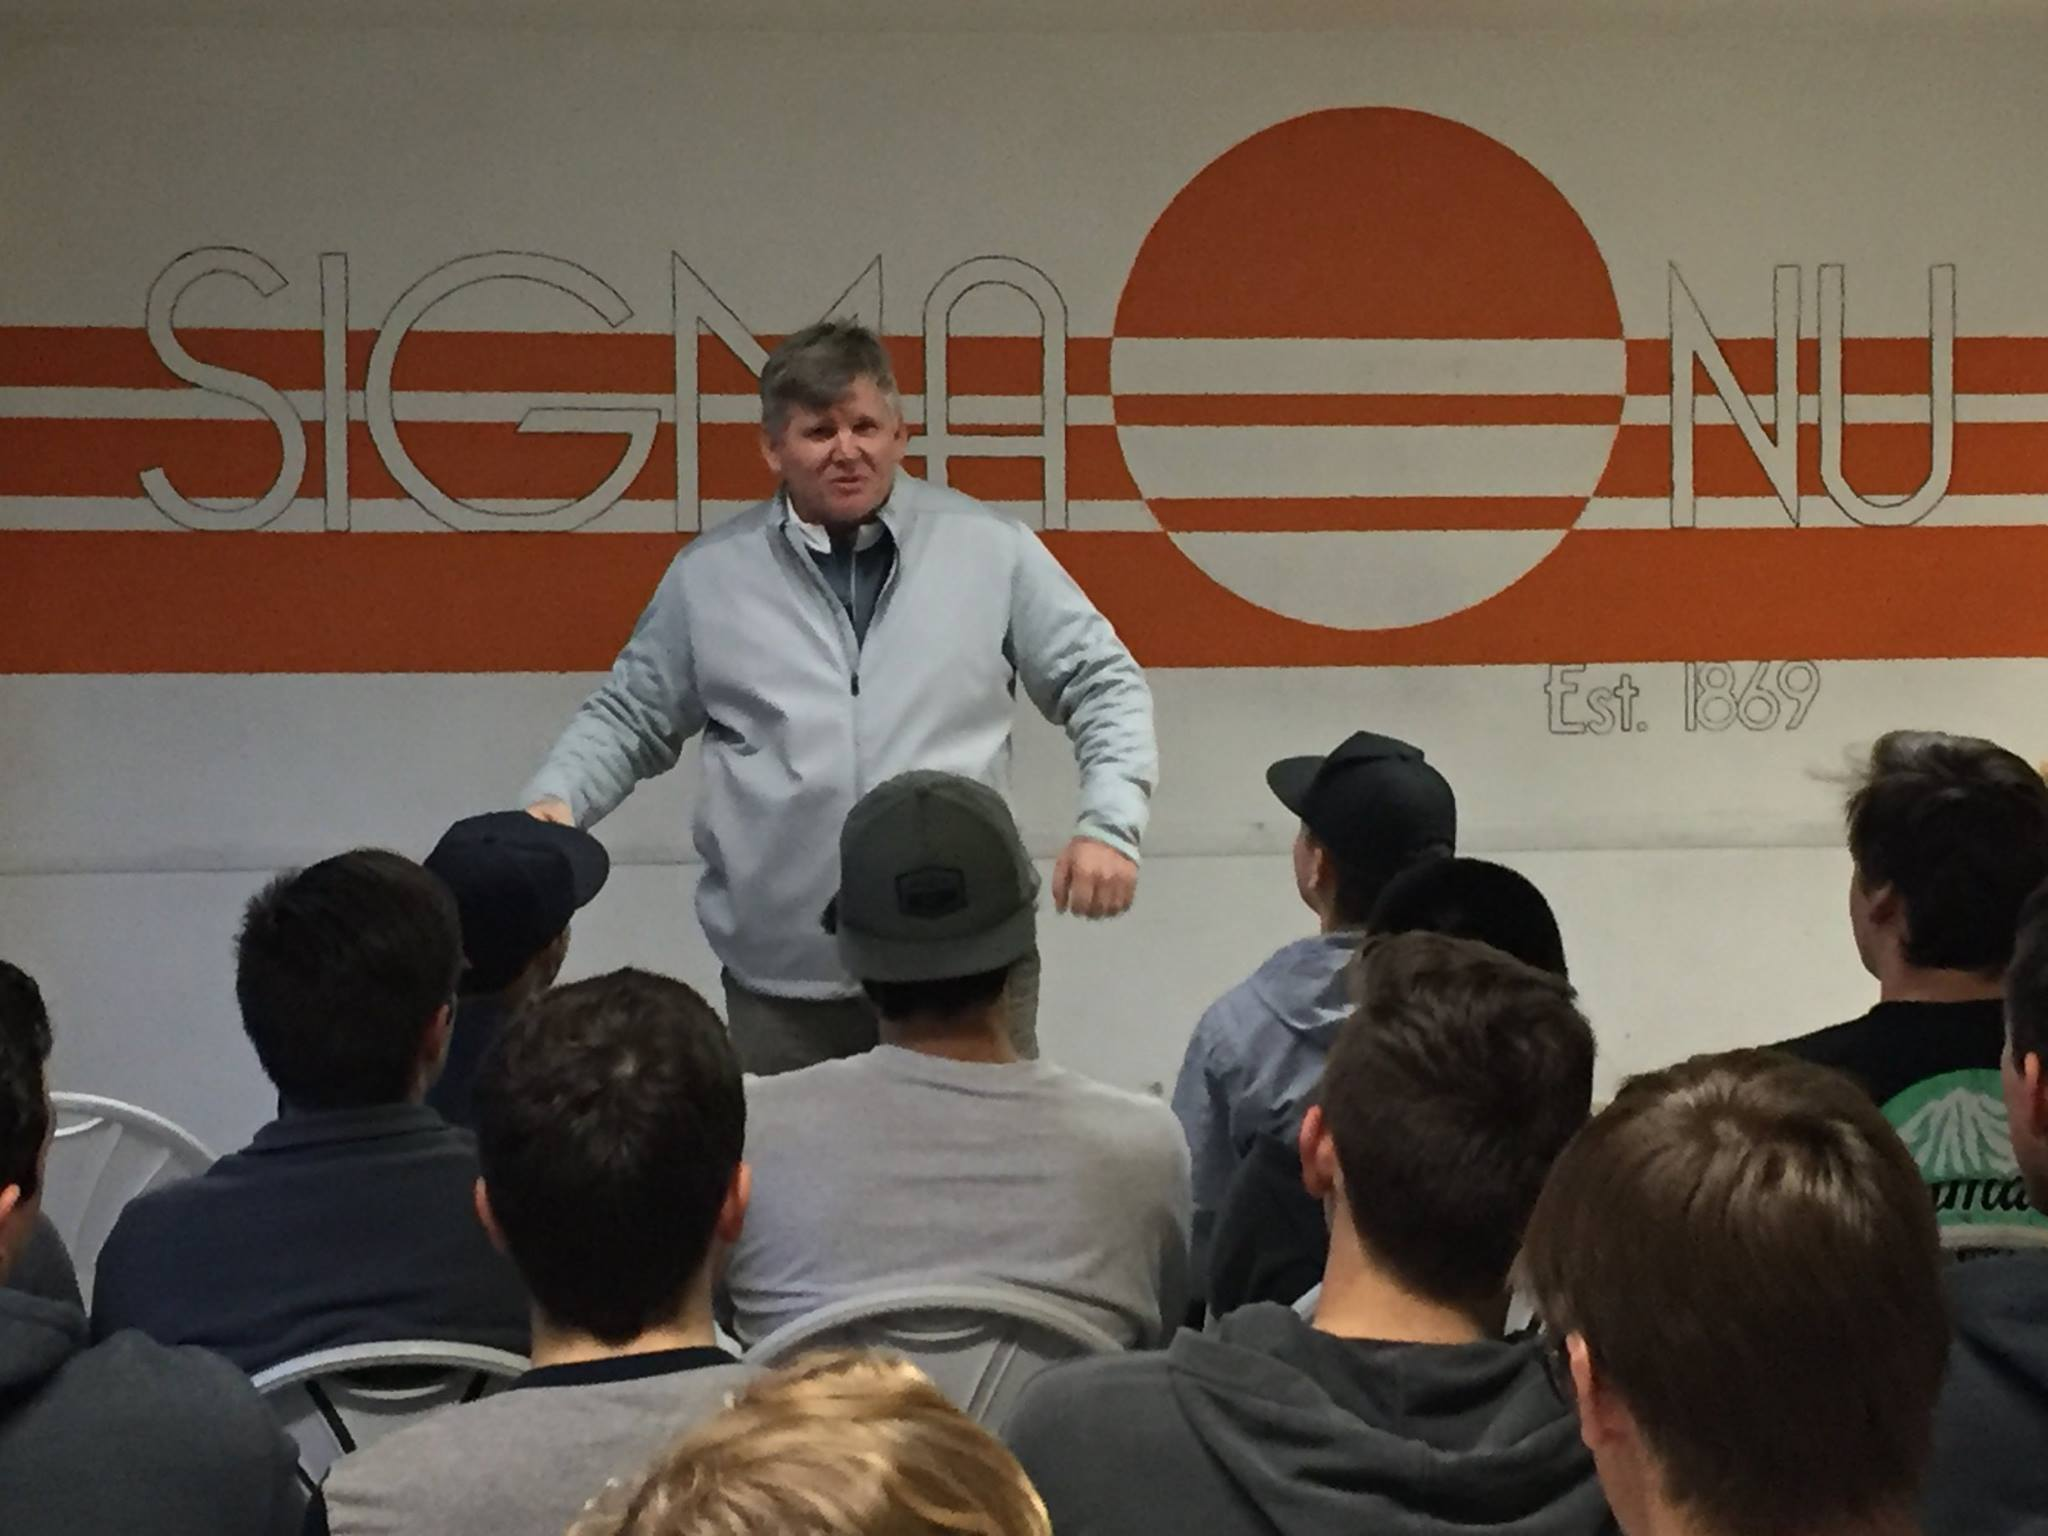 The Sigma Nu Fraternity would like to give a large thank you to UC Davis Football head coach, Dan Hawkins, for speaking to us about ethics today! He's an Aggie Alumnus with a lot to offer not just to the football program but to the entire school as well! His talk with us was stimulating, motivational, and enlightening. Thanks again Coach for your time and words of wisdom.